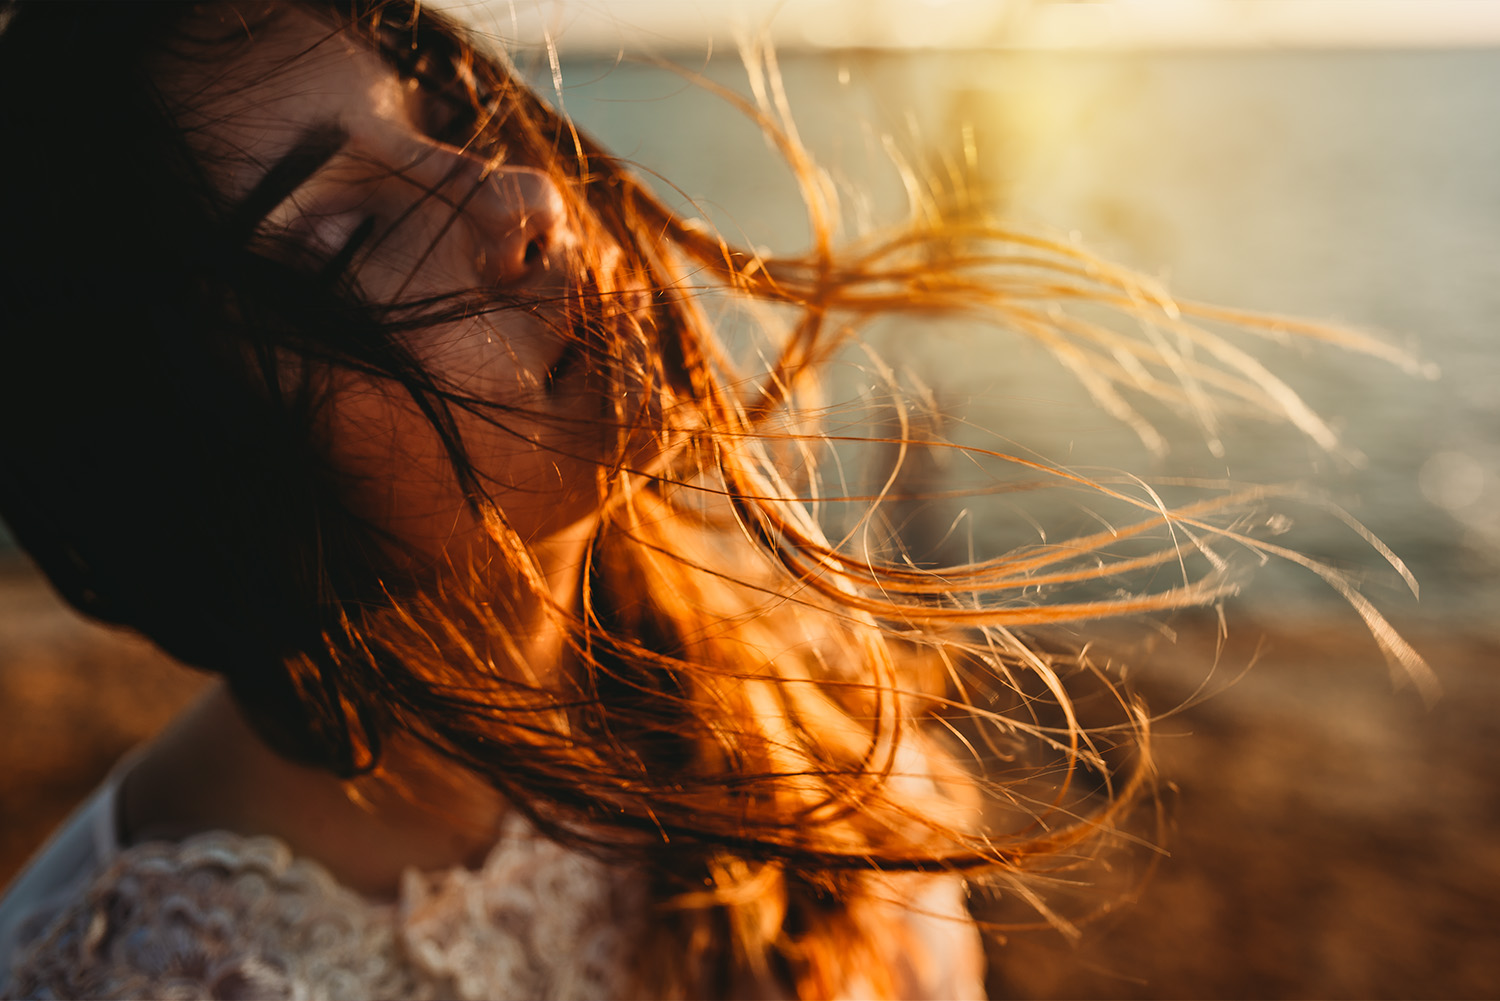 amber talbert_young girl with hair blowing in wind at sunset